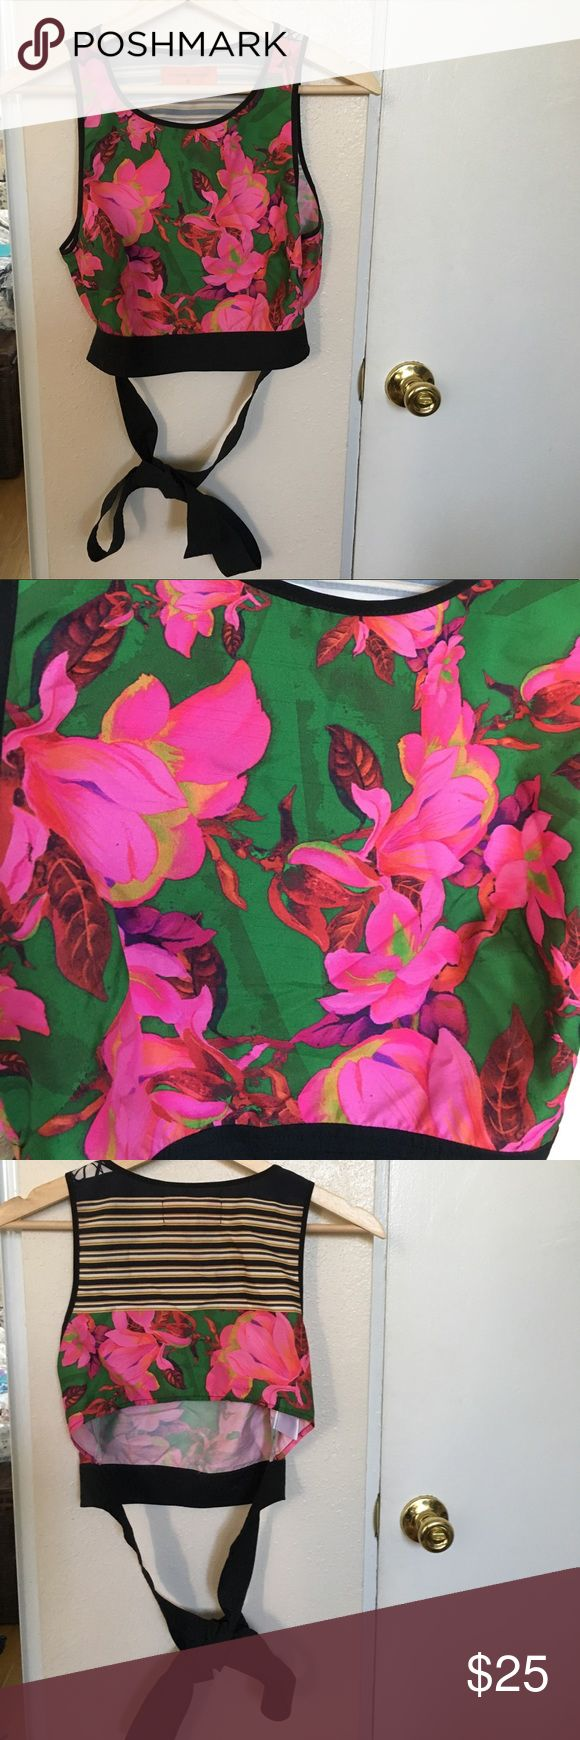 Clover Canyon floral crop top with ribbon Small crop top with a ribbon that ties around the waist. Material good for the summer since it's thin and breathable. Only worn a few times and makes a good addition to any summer or spring wardrobe! Clover Canyon Tops Crop Tops